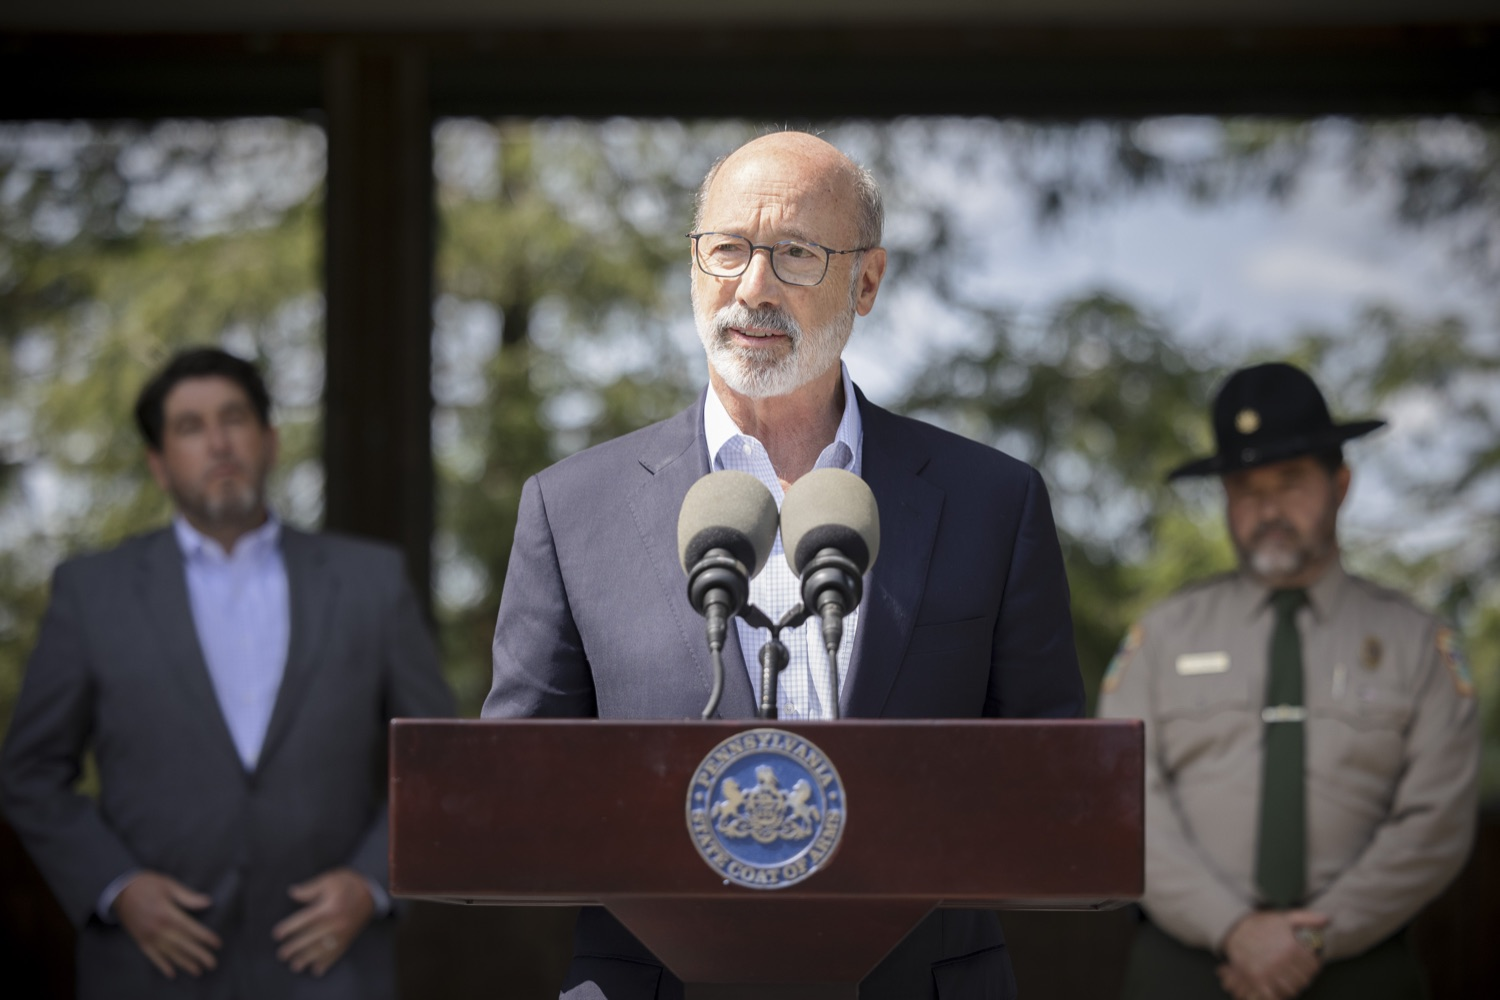 """<a href=""""https://filesource.wostreaming.net/commonwealthofpa/photo/19111_gov_parkVaccines_dz_001.jpg"""" target=""""_blank"""">⇣Download Photo<br></a>Pennsylvania Governor Tom Wolf speaking with the press.  Governor Tom Wolf today announced that the Department of Health (DOH) and Department of Conservation and Natural Resources (DCNR) are partnering to hold COVID-19 vaccine clinics at five state parks across the commonwealth to help expand access to the COVID-19 vaccine.  Harrisburg, PA -- September 10, 2021"""